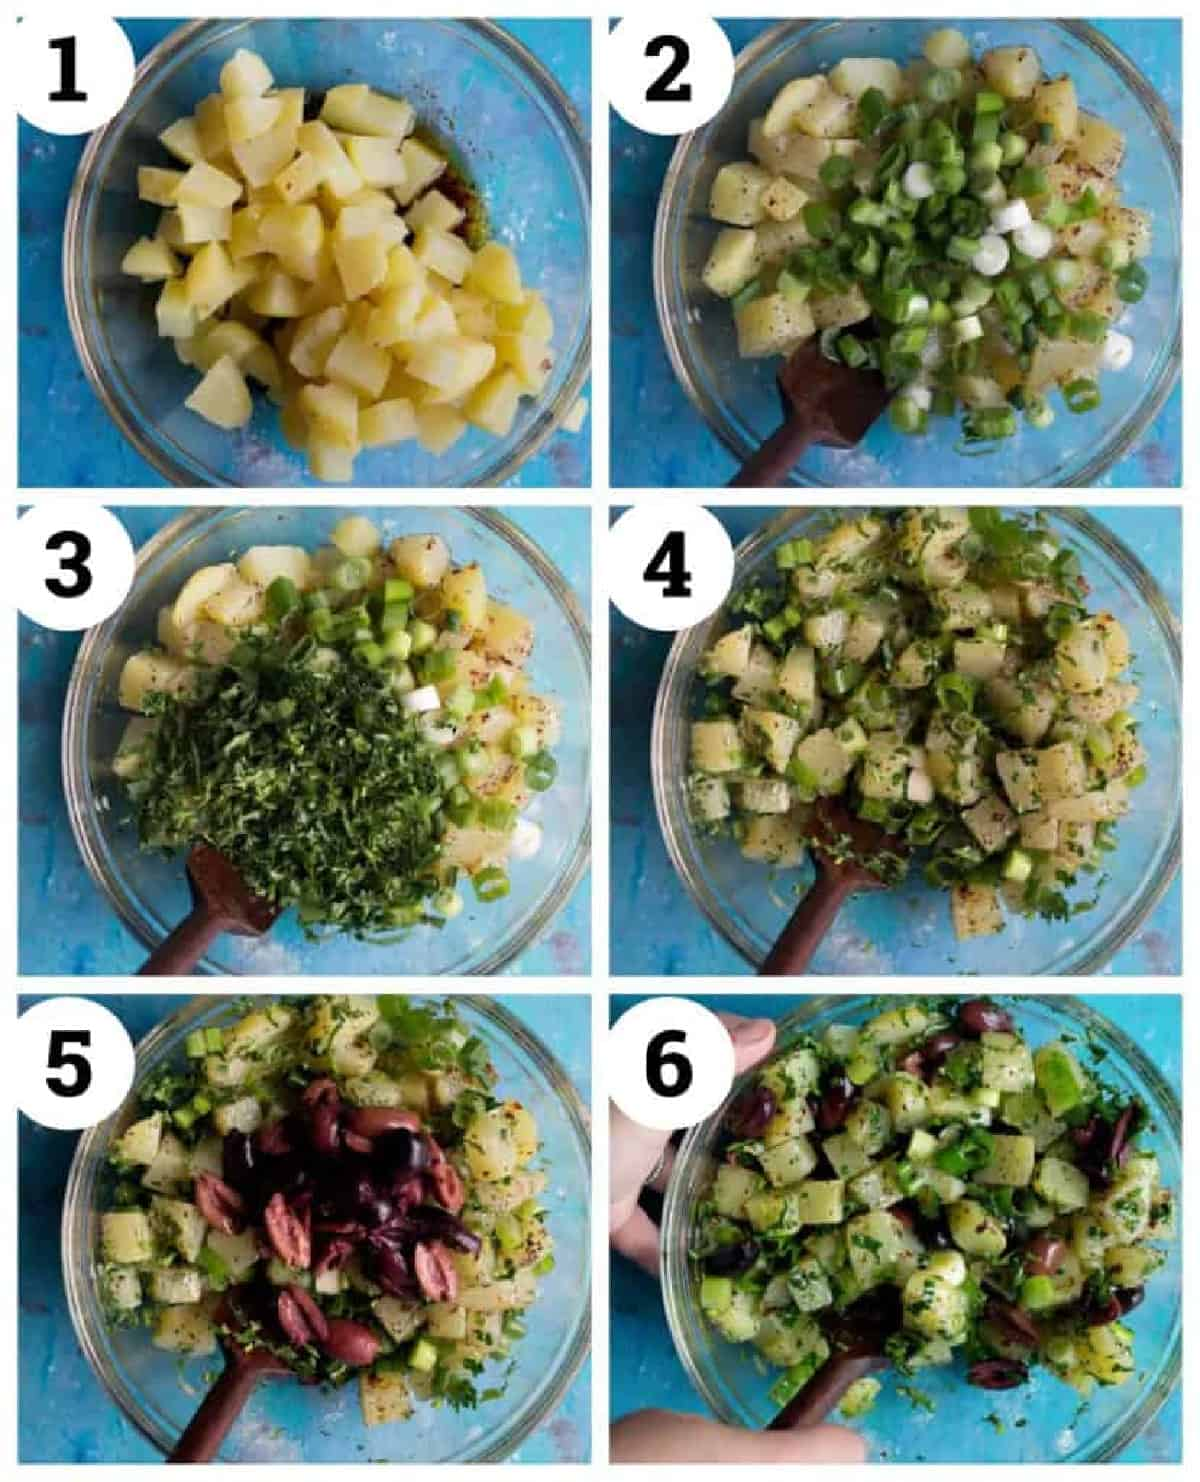 boil the potatoes, mix with the dressing and the herbs, chill in the fridge and serve.